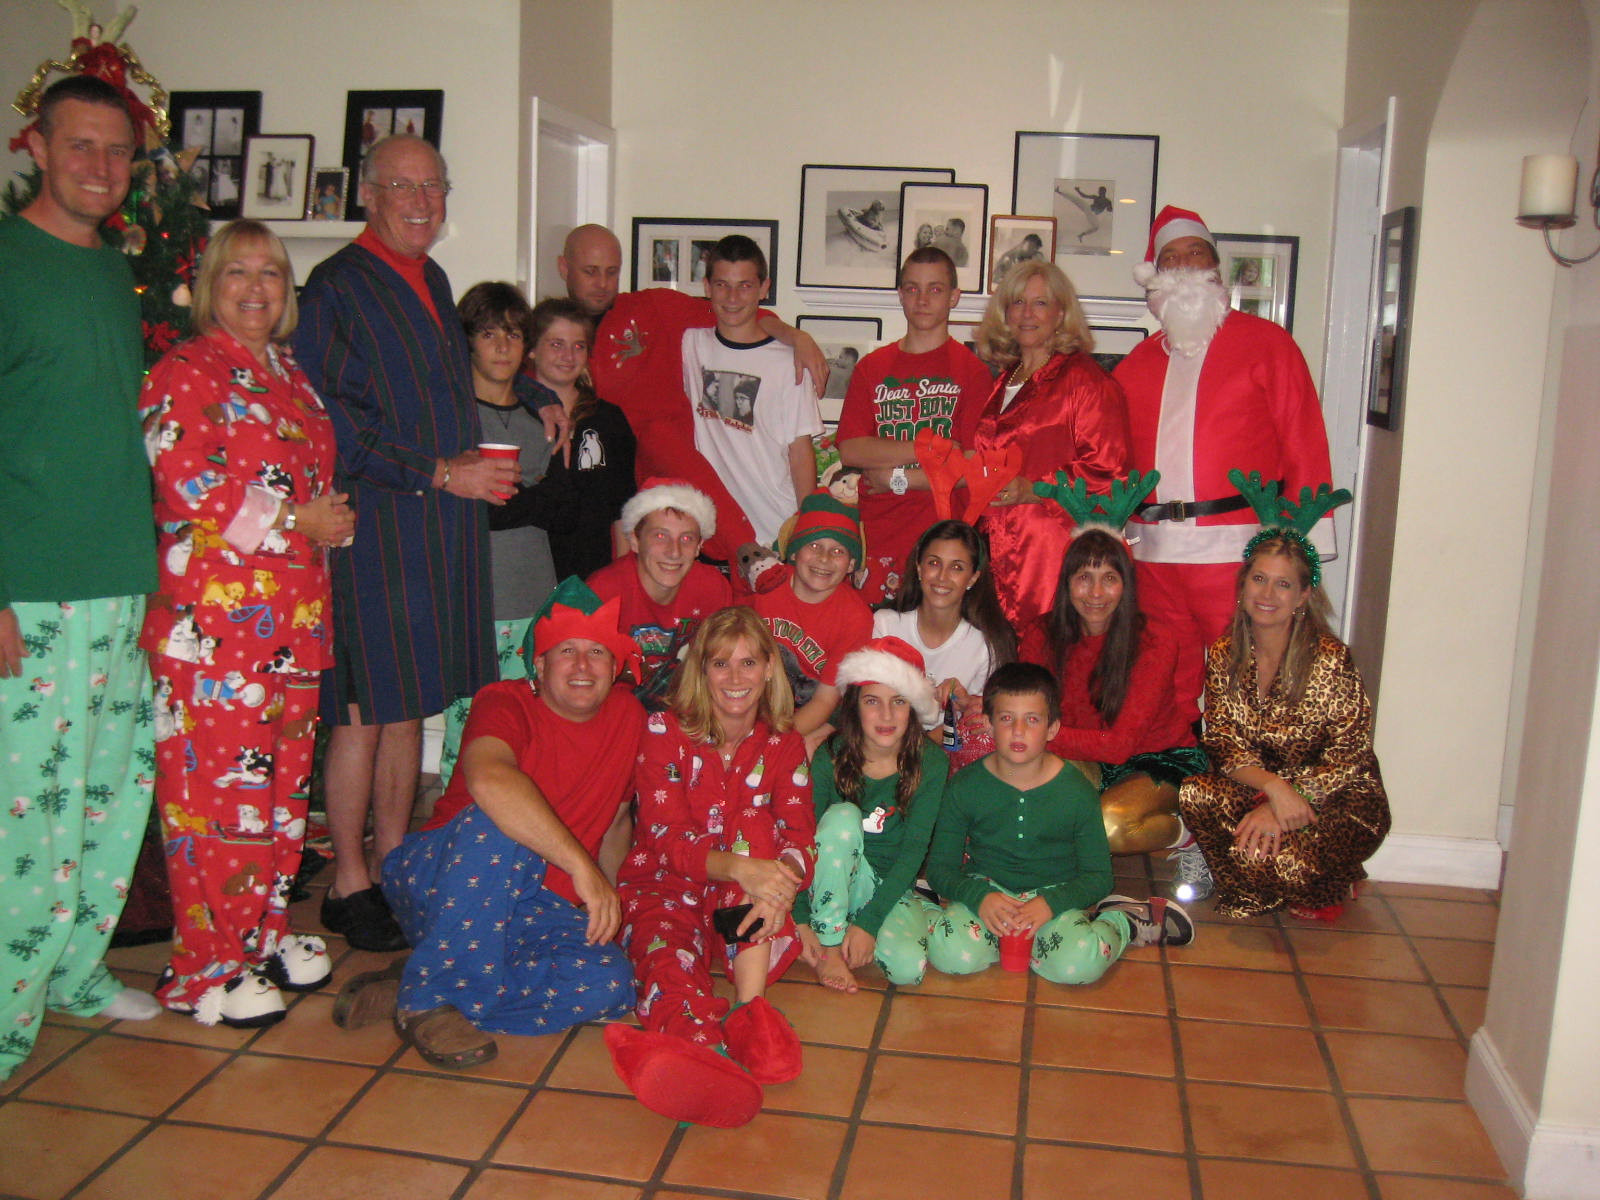 Christmas Party Theme Ideas For Adults  Creative Party Ideas by Cheryl Christmas Pajama Party